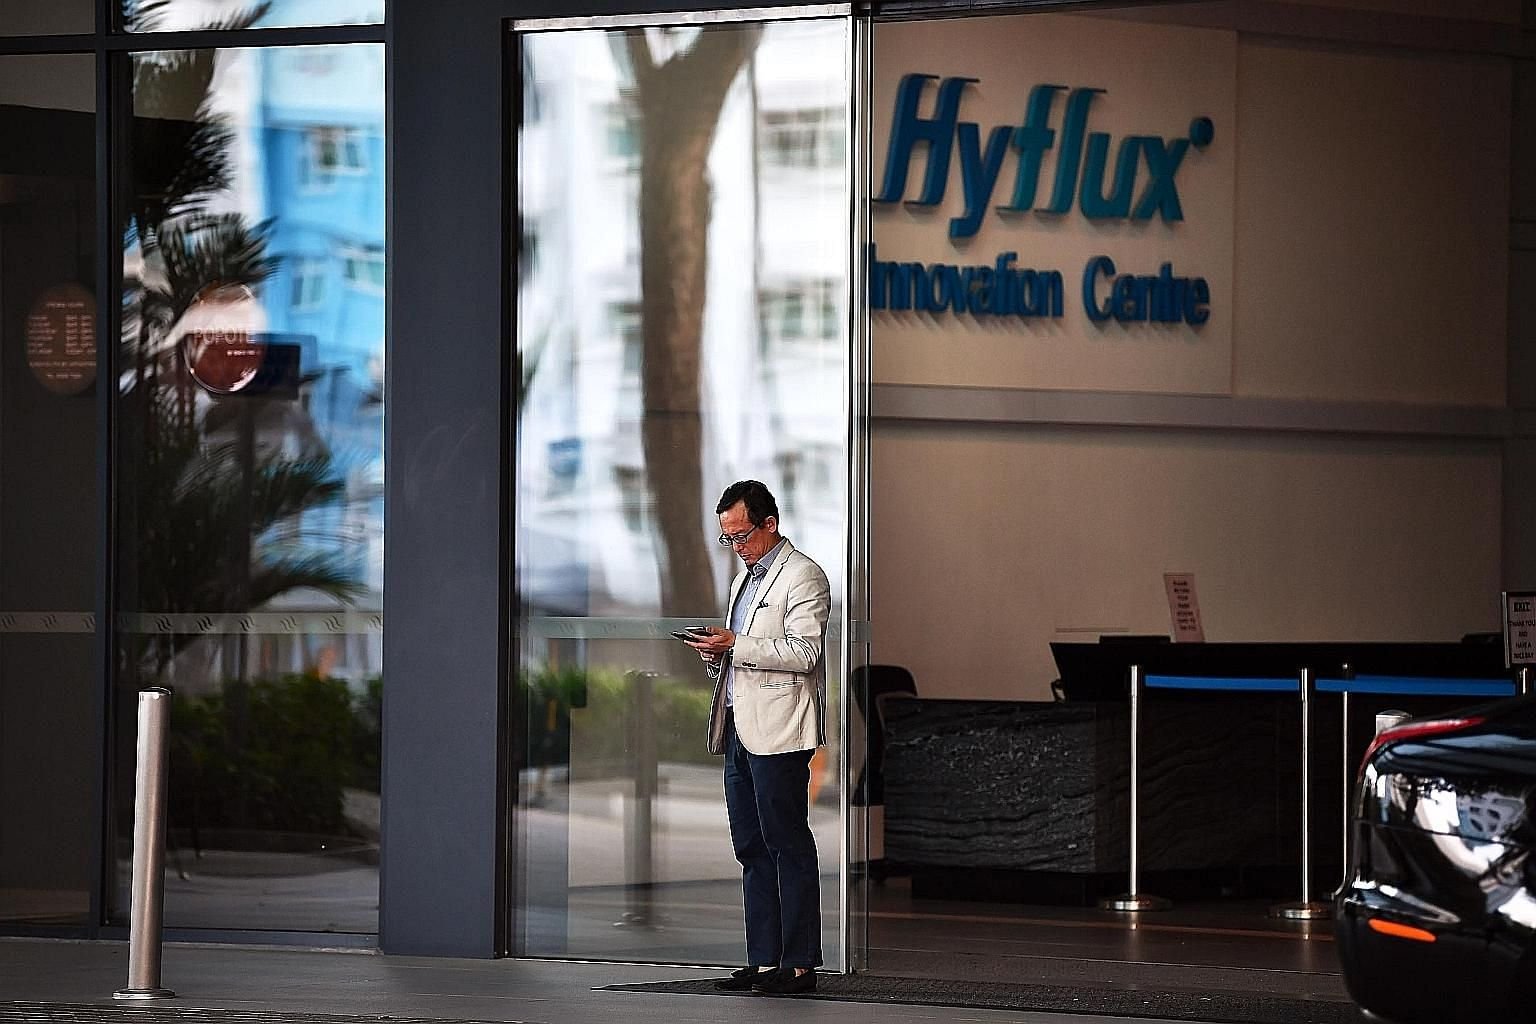 Hyflux earlier said it would engage exclusively with Utico until Aug 26, the deadline for the parties to agree to a firm deal. The deal sees Utico taking the 88 per cent stake in Hyflux through a $300 million equity injection and a $100 million share